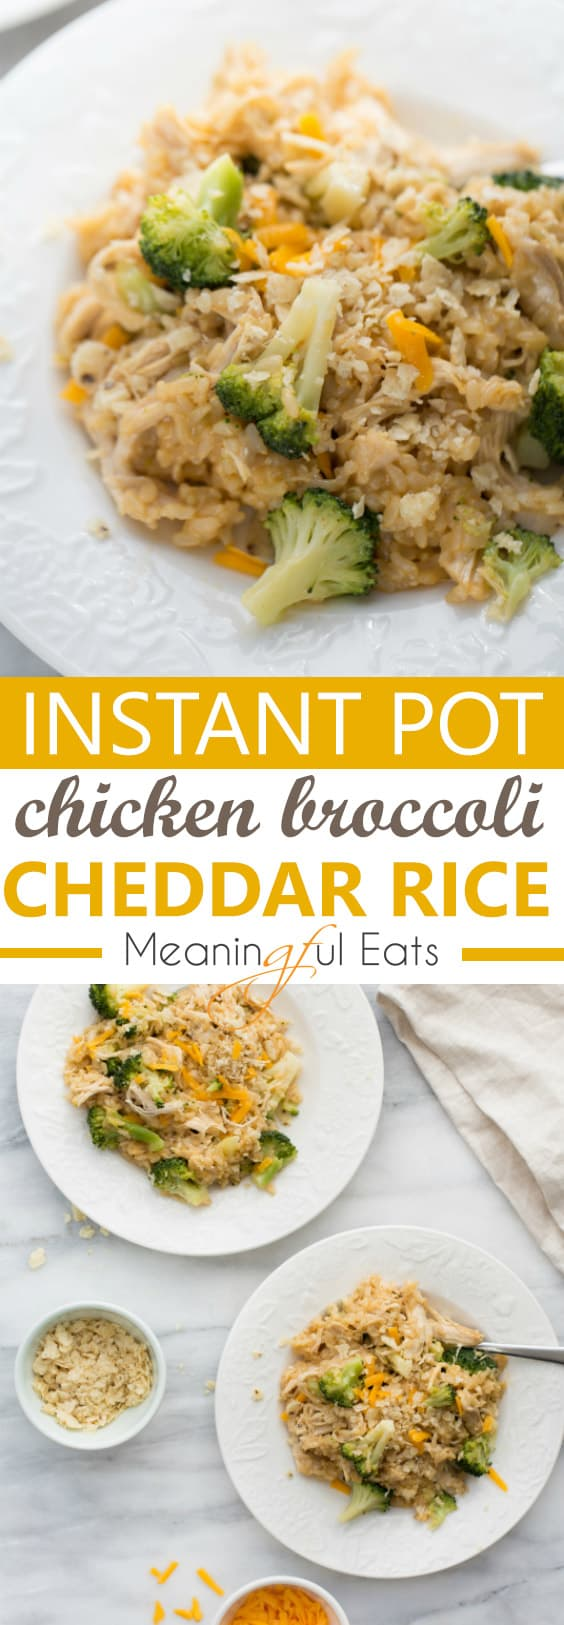 Instant Pot Chicken, Broccoli and Cheddar Rice! #instantpot #instantpotrecipes #instantpotchickenandrice #easyinstantpotrecipes #glutenfreeinstantpot #instantpotdinner #glutenfreedinner #glutenfree